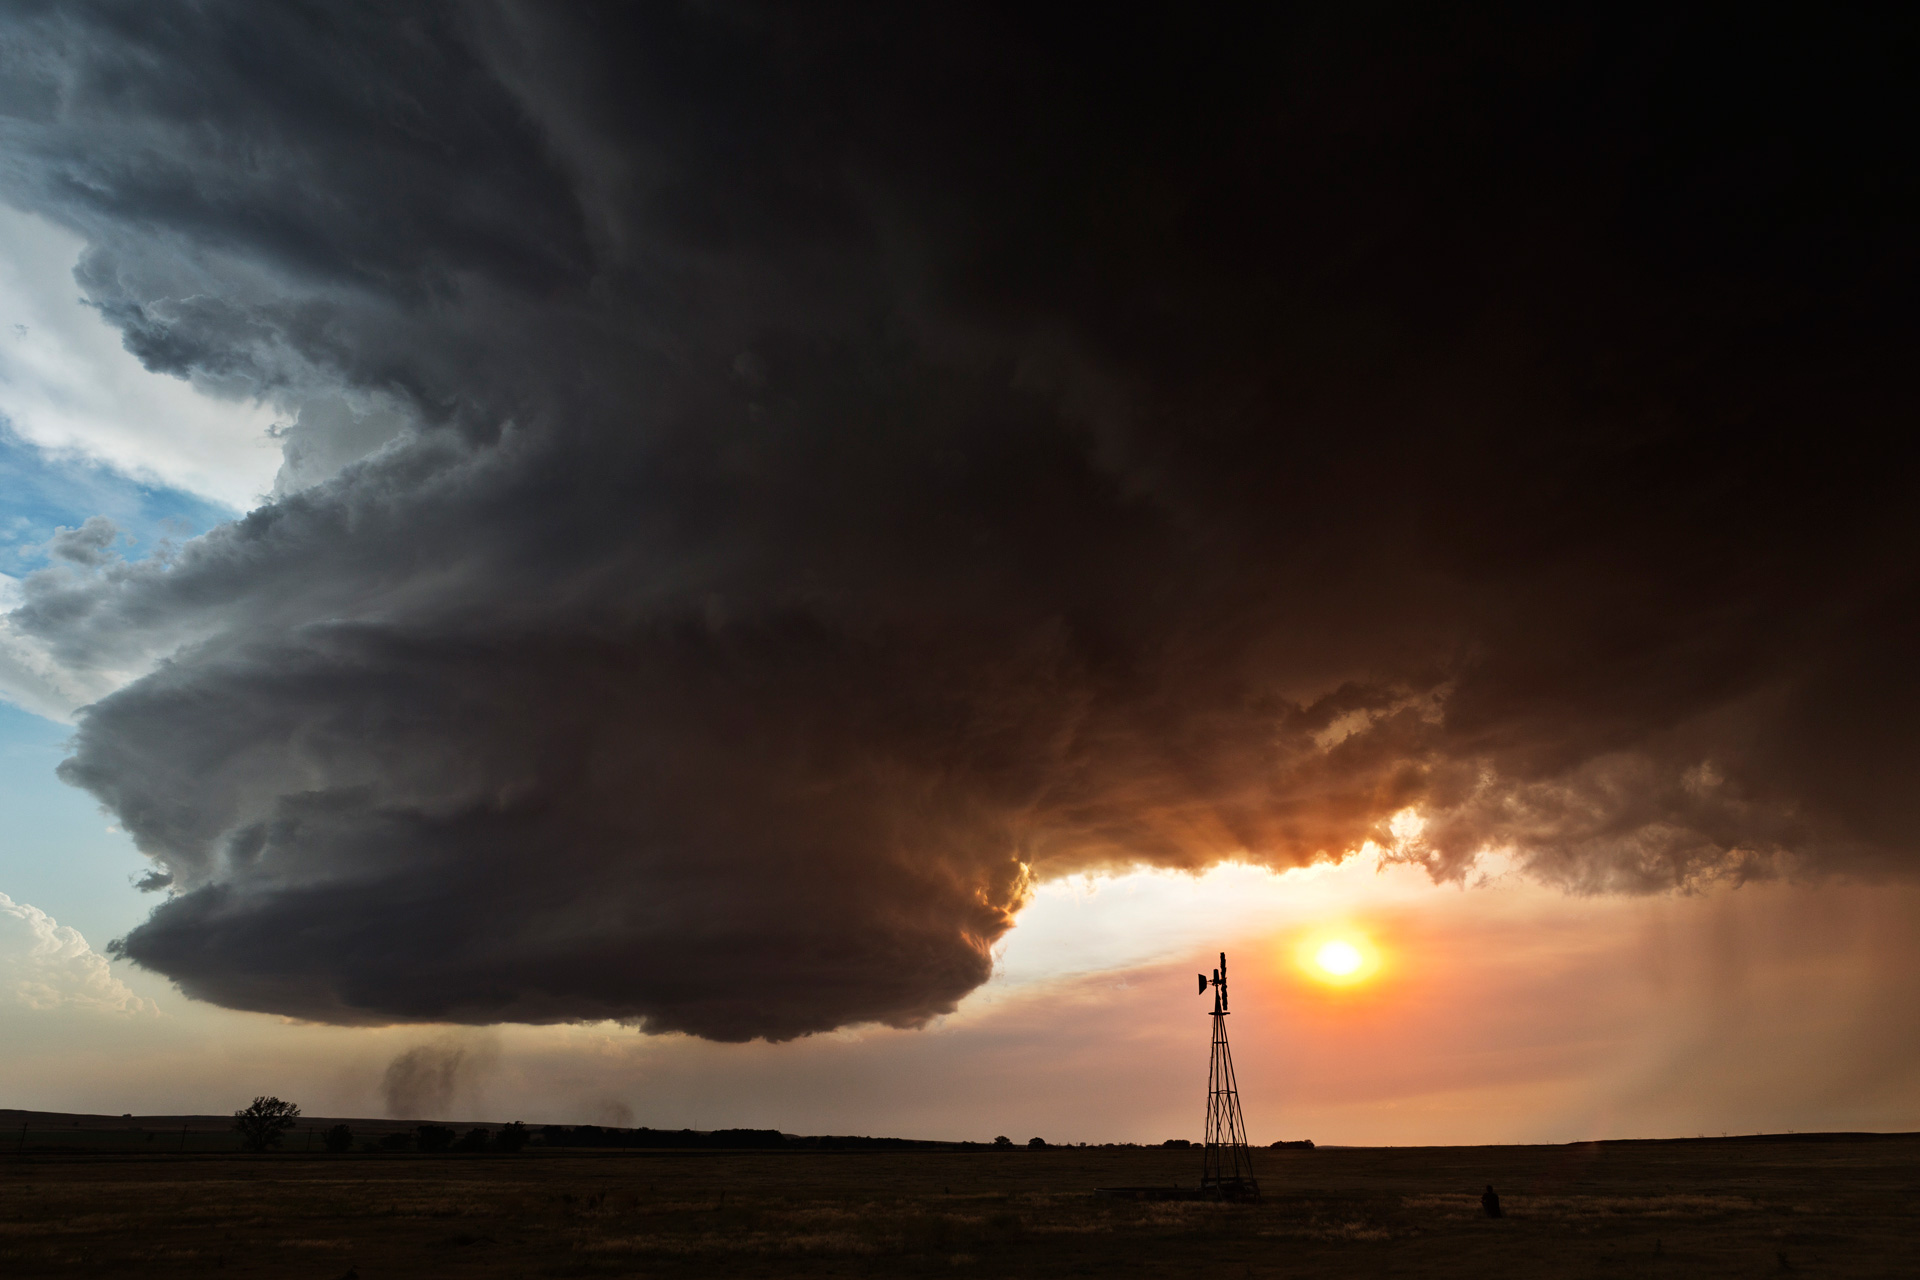 Insane And Unusual Weather Phenomenas That Are Actually Real - 18 insane unusual weather phenomenas actually real